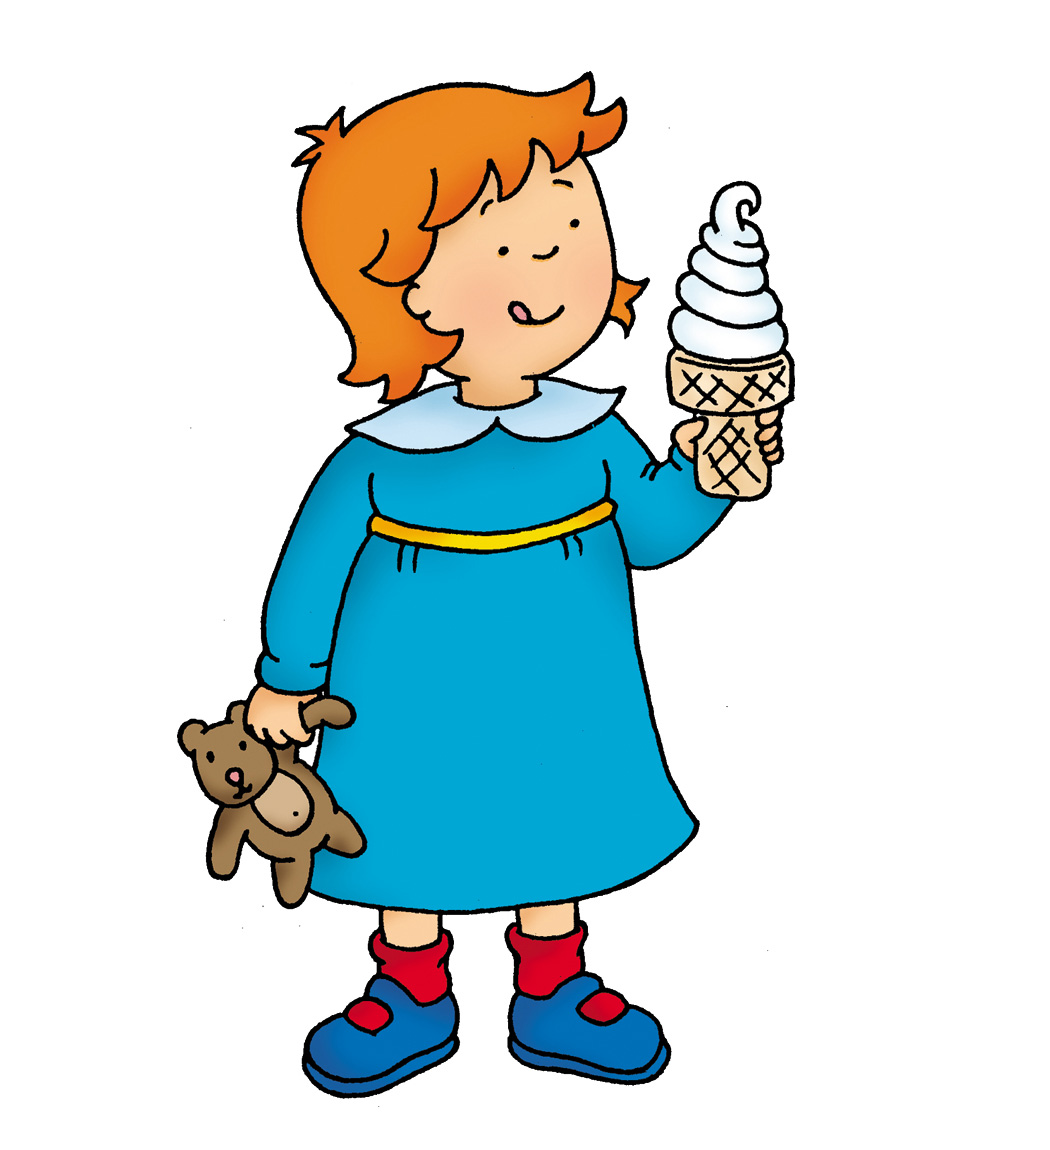 Rosie (Caillou)